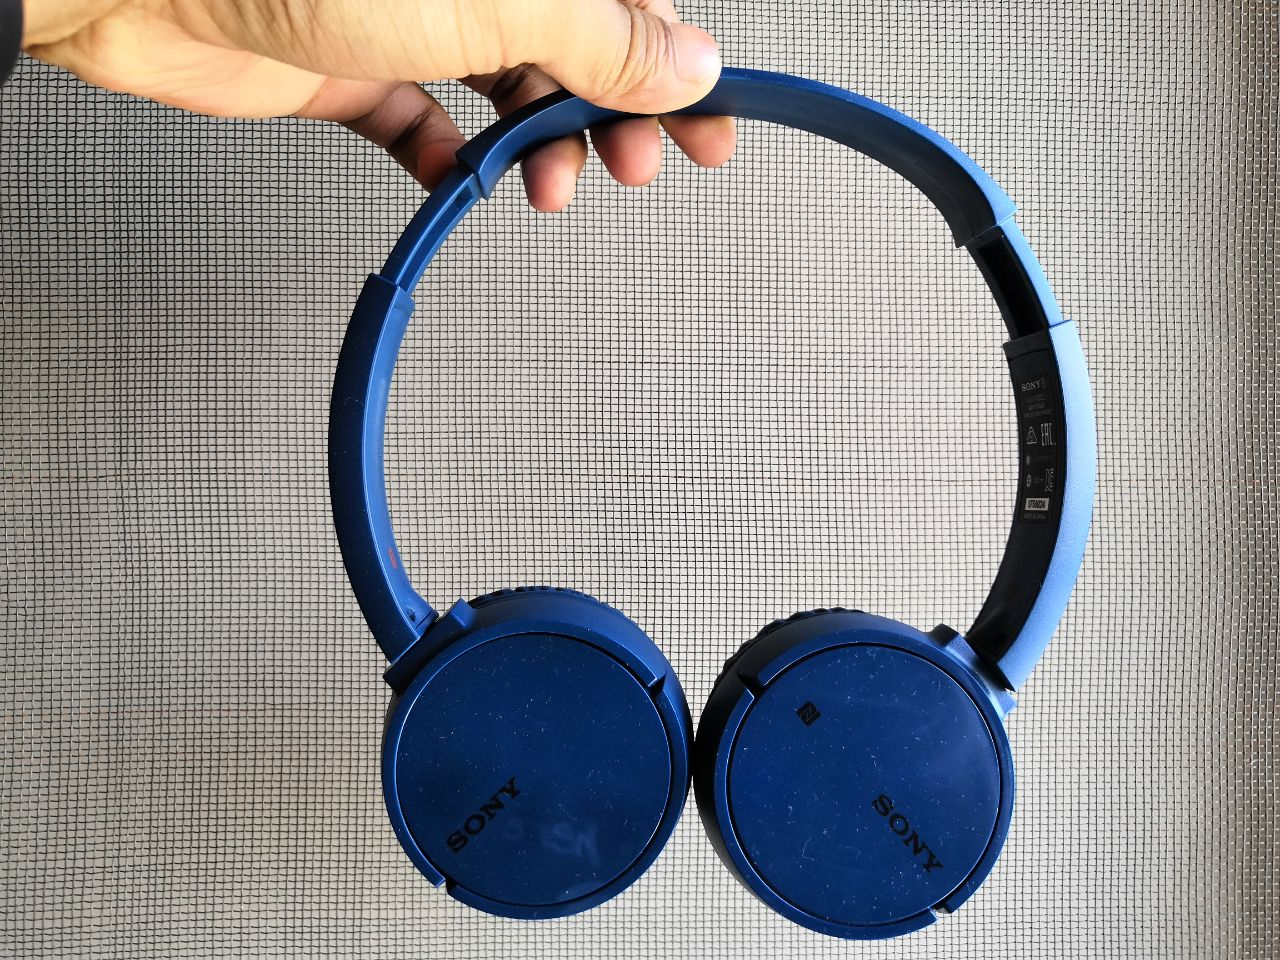 Sony WH-CH500 Wireless Headset Review